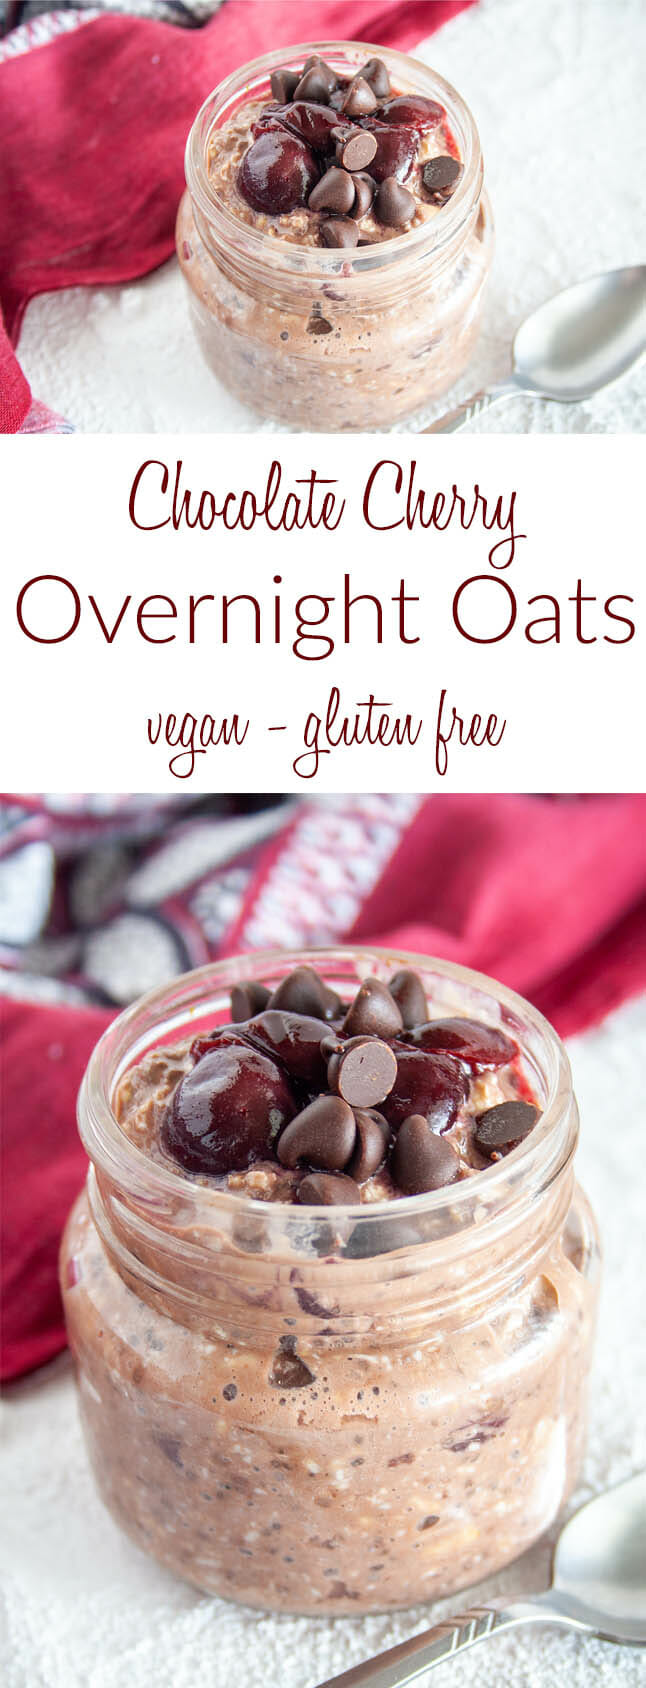 Chocolate Cherry Overnight Oats collage photo with text.